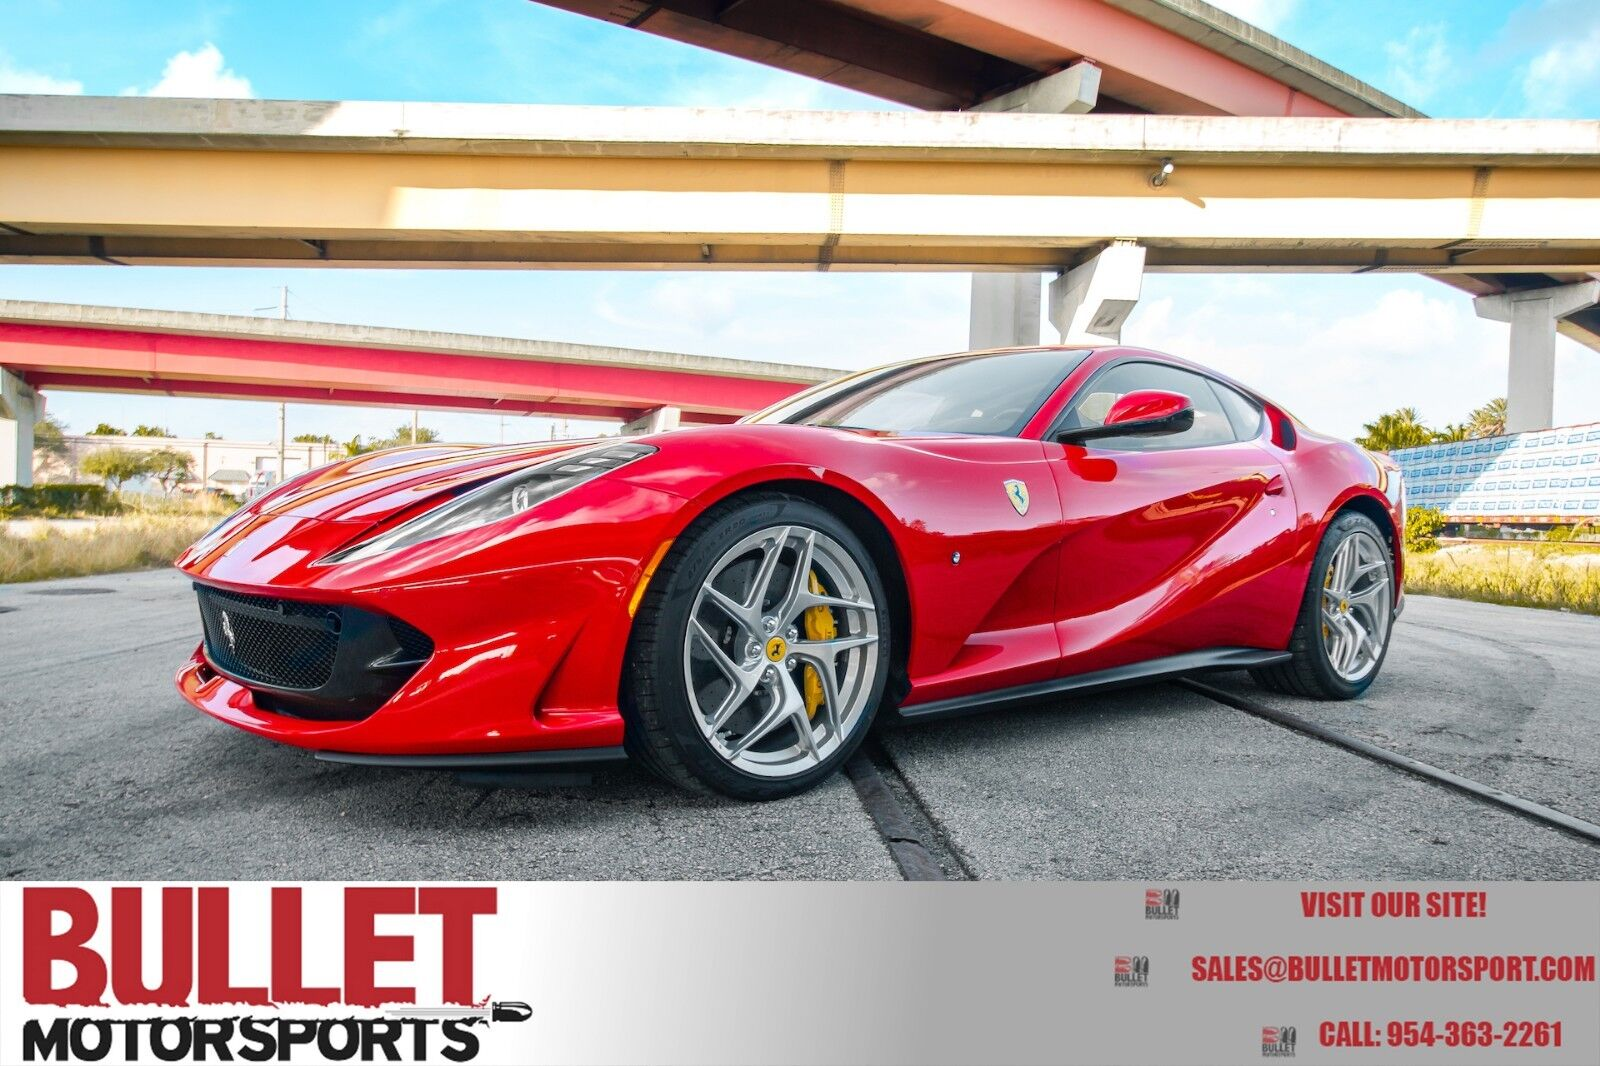 2018 Ferrari 812 Superfast, Highly Optioned, Zero Imperfections, 150 Miles!